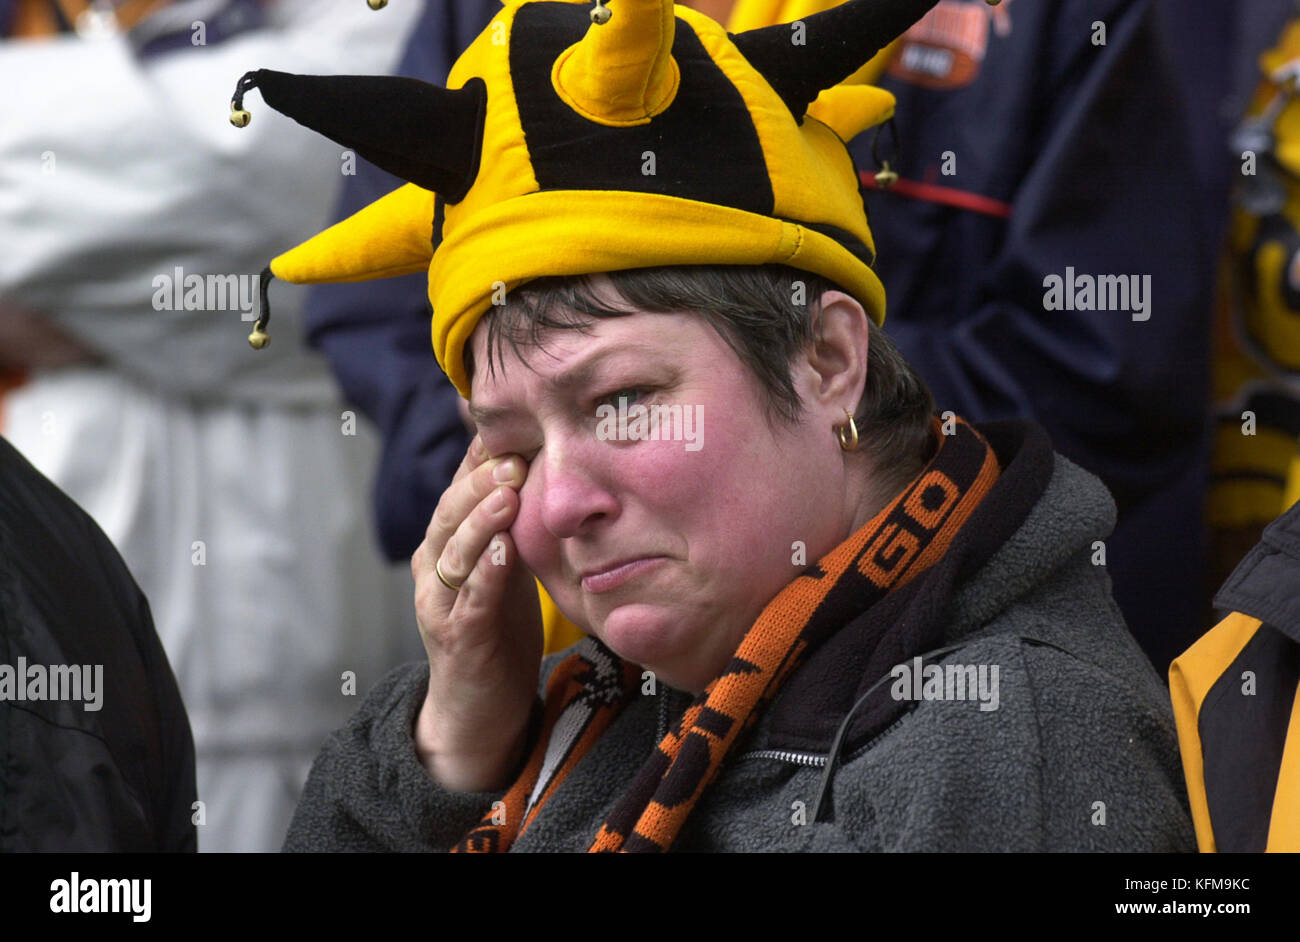 Football supporter fan crying Sheffield Wednesday v Wolverhampton Wanderers April 2002 - Stock Image